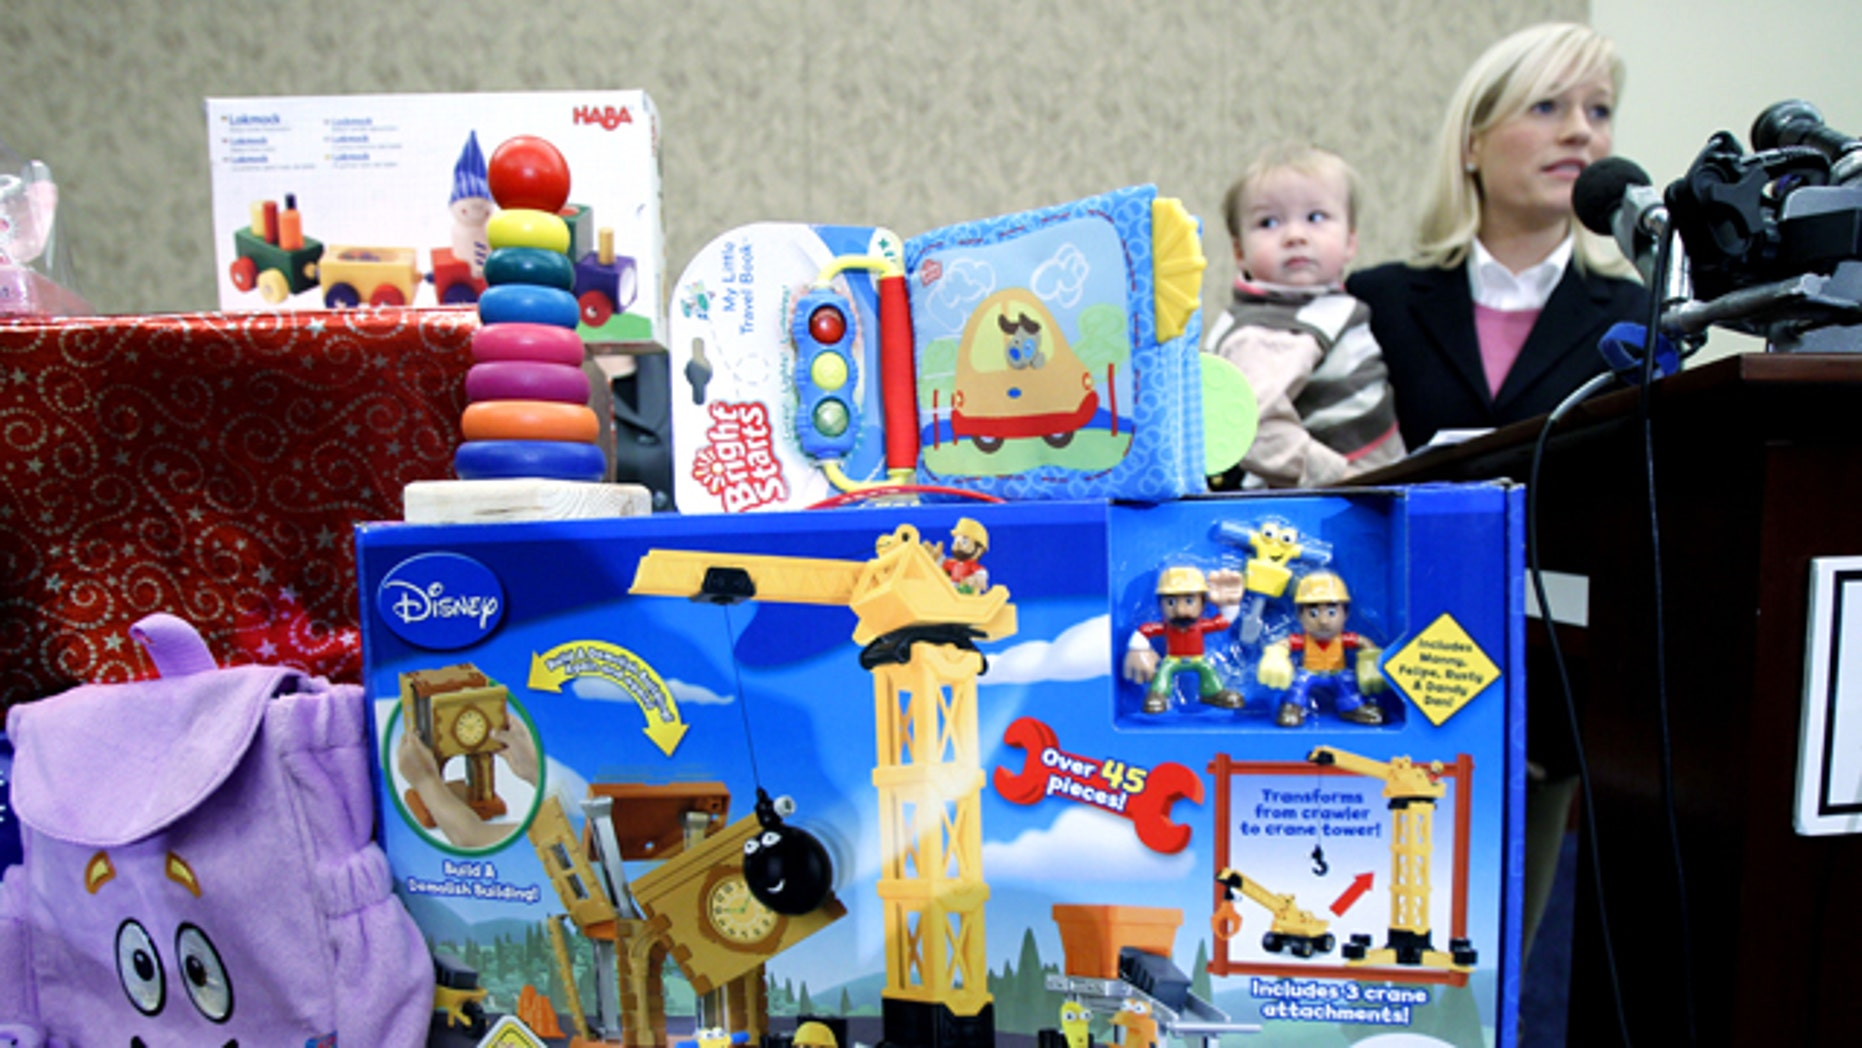 Nov. 23: Jennifer Tapper describe the problem she went through when her son 13-month-old on Jack Tapper chocked on a small part of a toy during the 25th Annual Survey of Toy Safety in Washington.